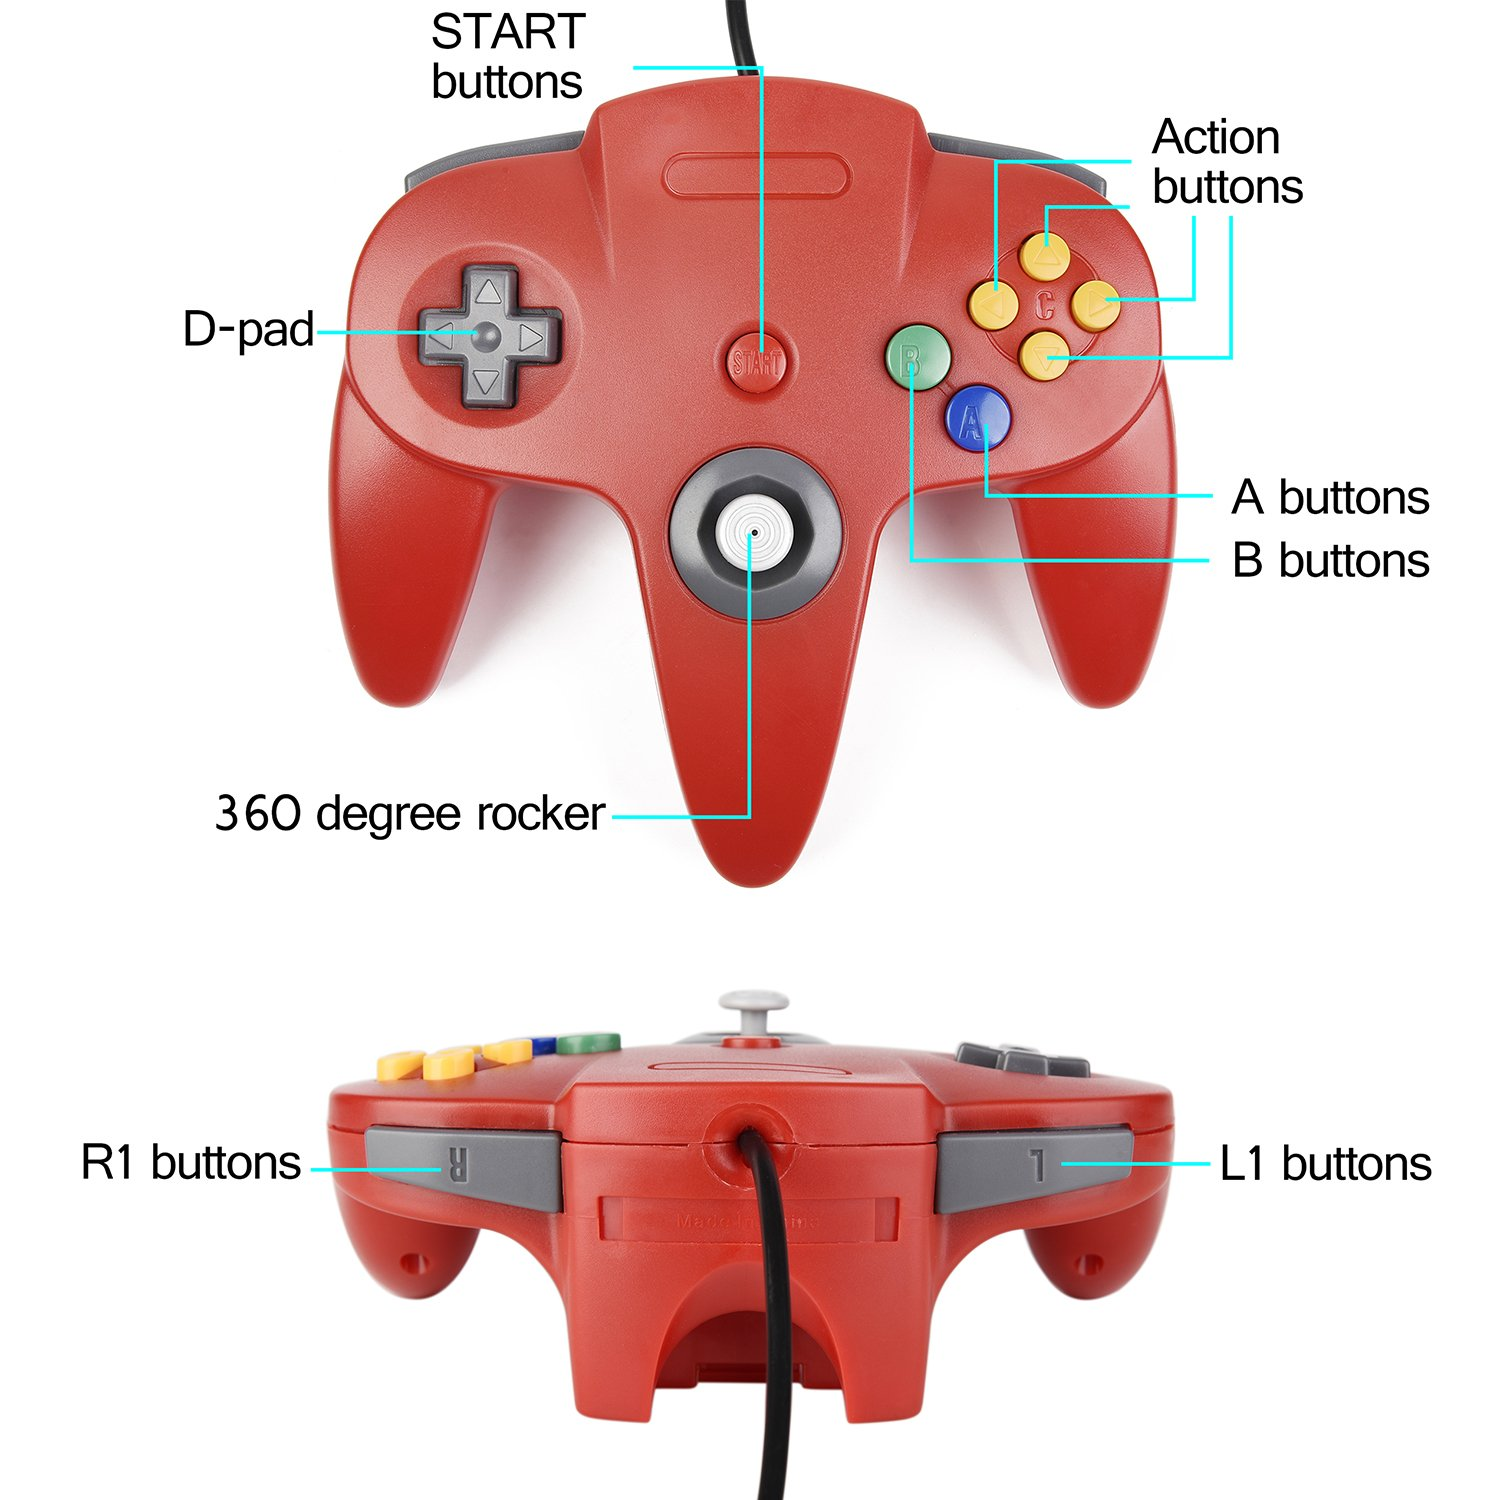 2xClassic N64 Controller,kiwitata Retro Wired Gamepad Controller Joystick for N64 Console Video Games System Red+Blue by kiwitata (Image #3)